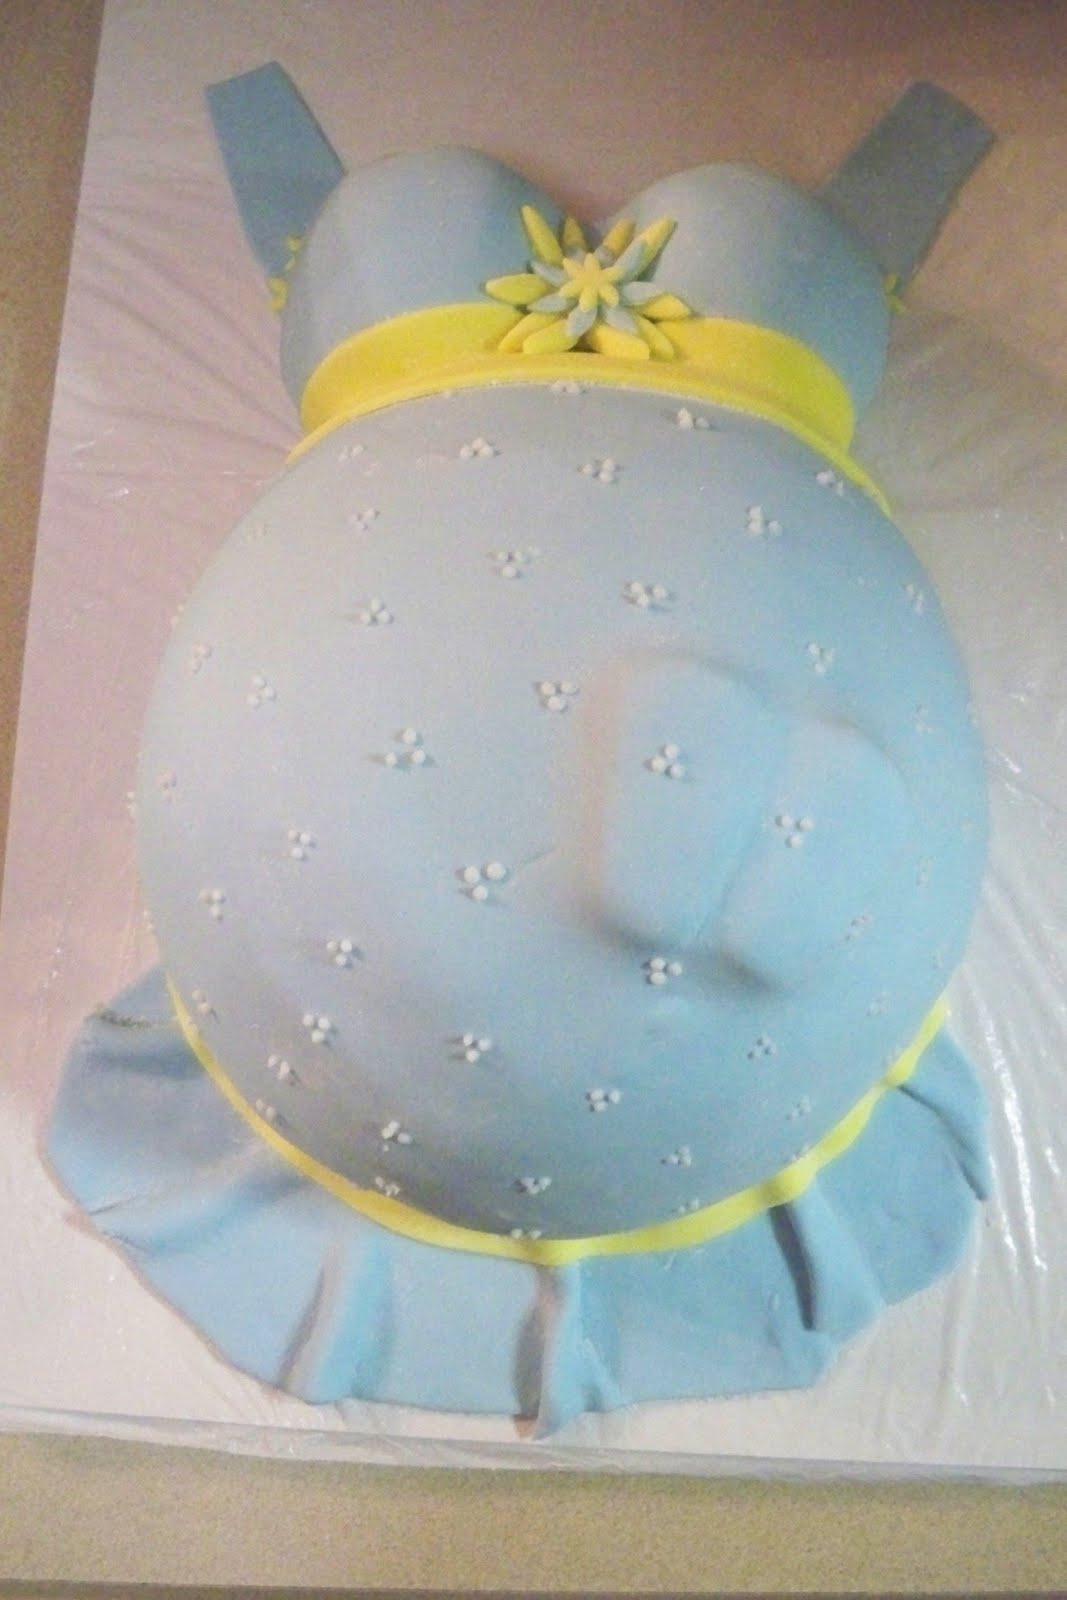 Baby Shower Cakes: Easy Baby Shower Cake Ideas Boy